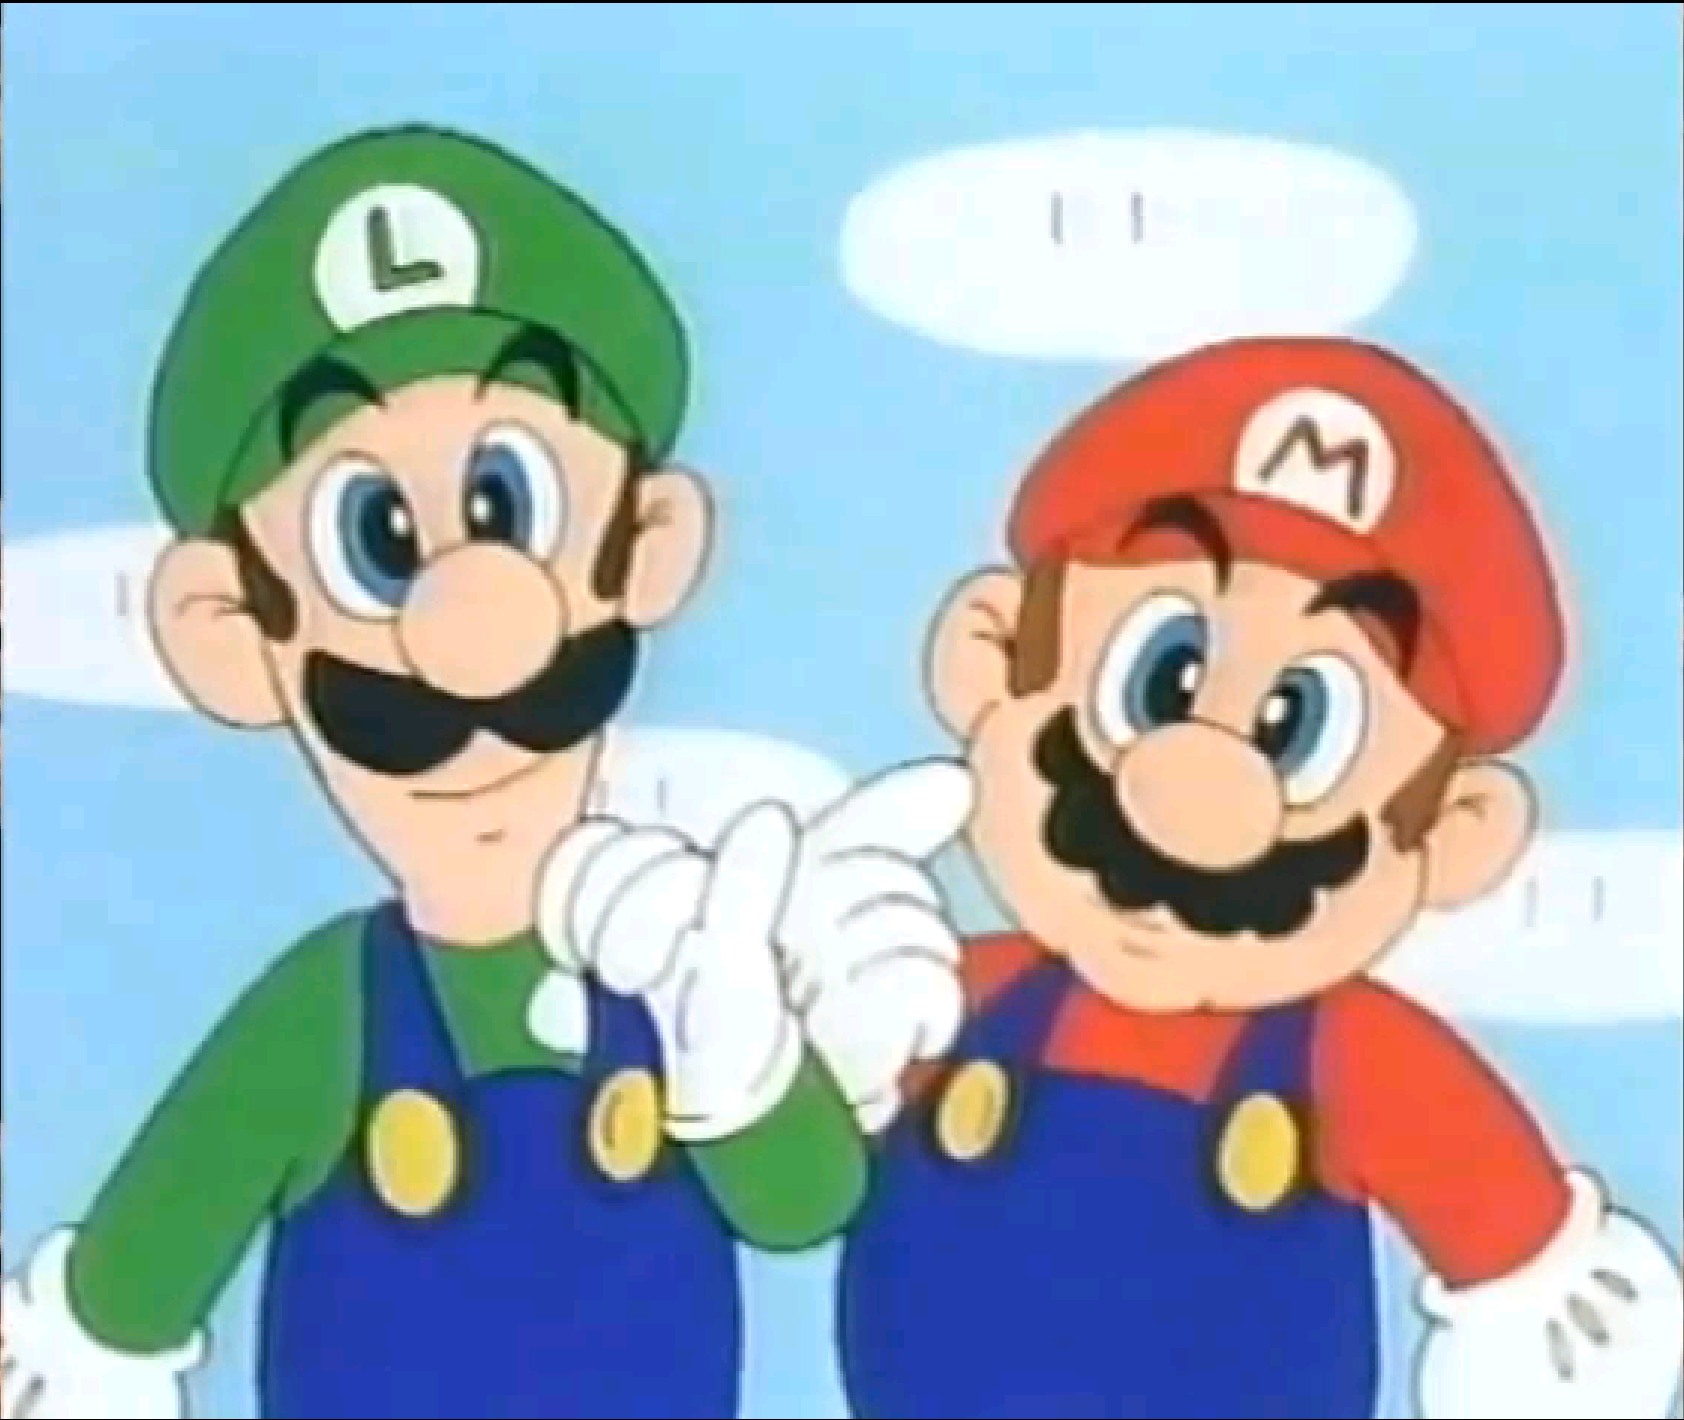 Cartoon Characters 3 Fingers : Mario and luigi cute face by princesspuccadominyo on